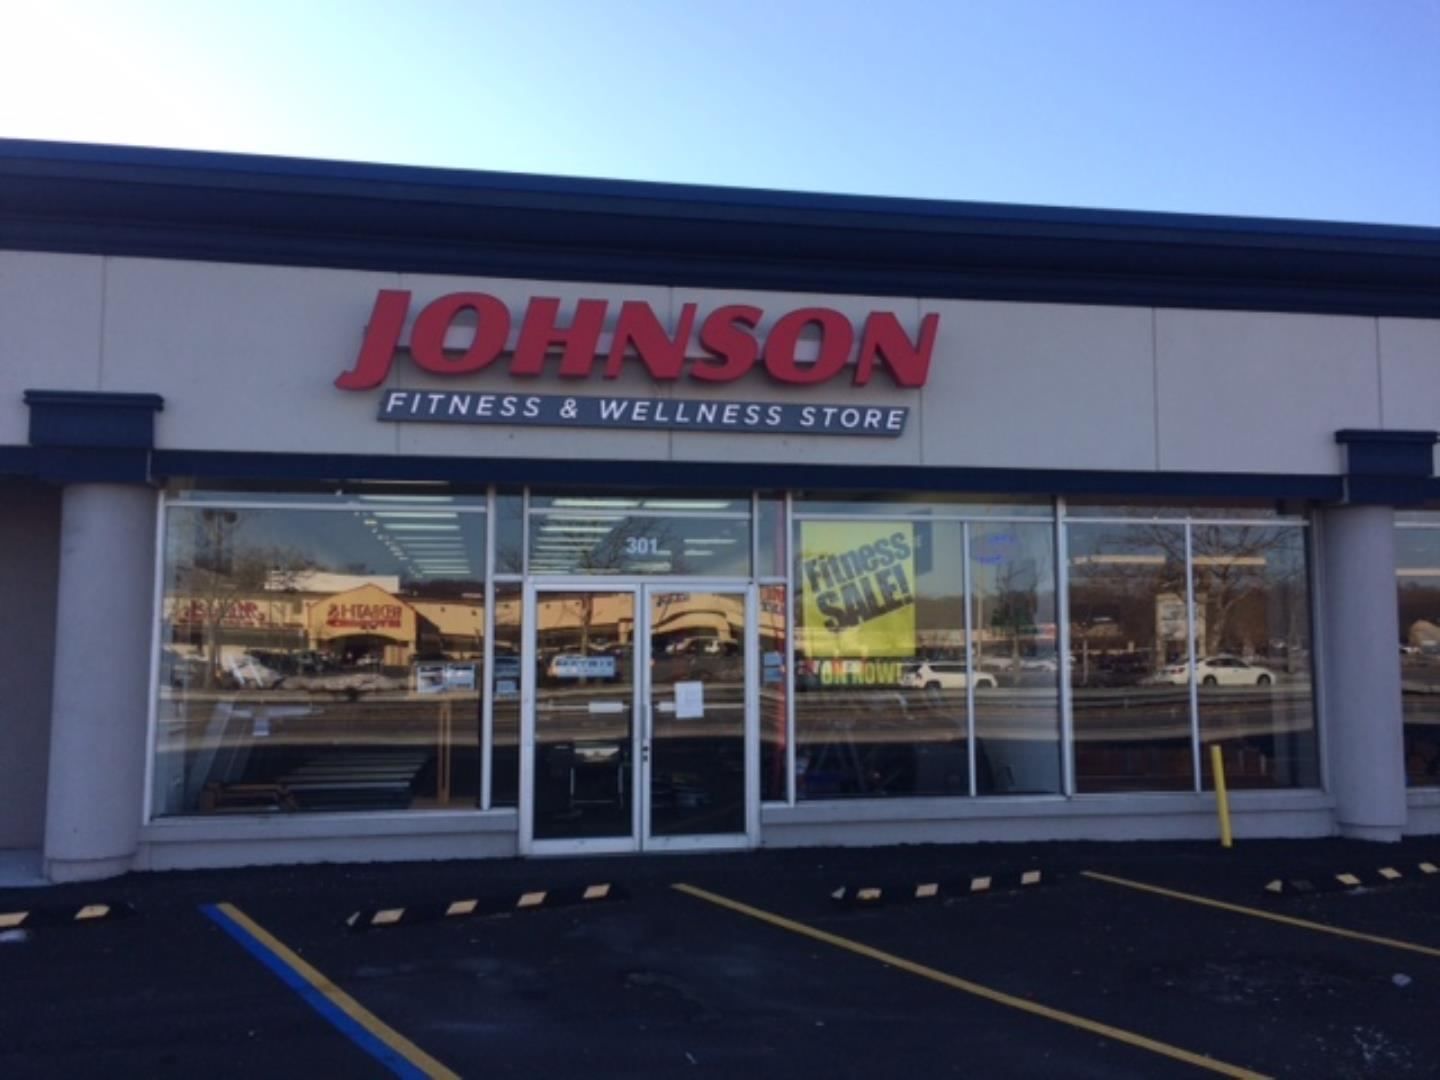 Johnson Fitness & Wellness - Huntington Station, NY